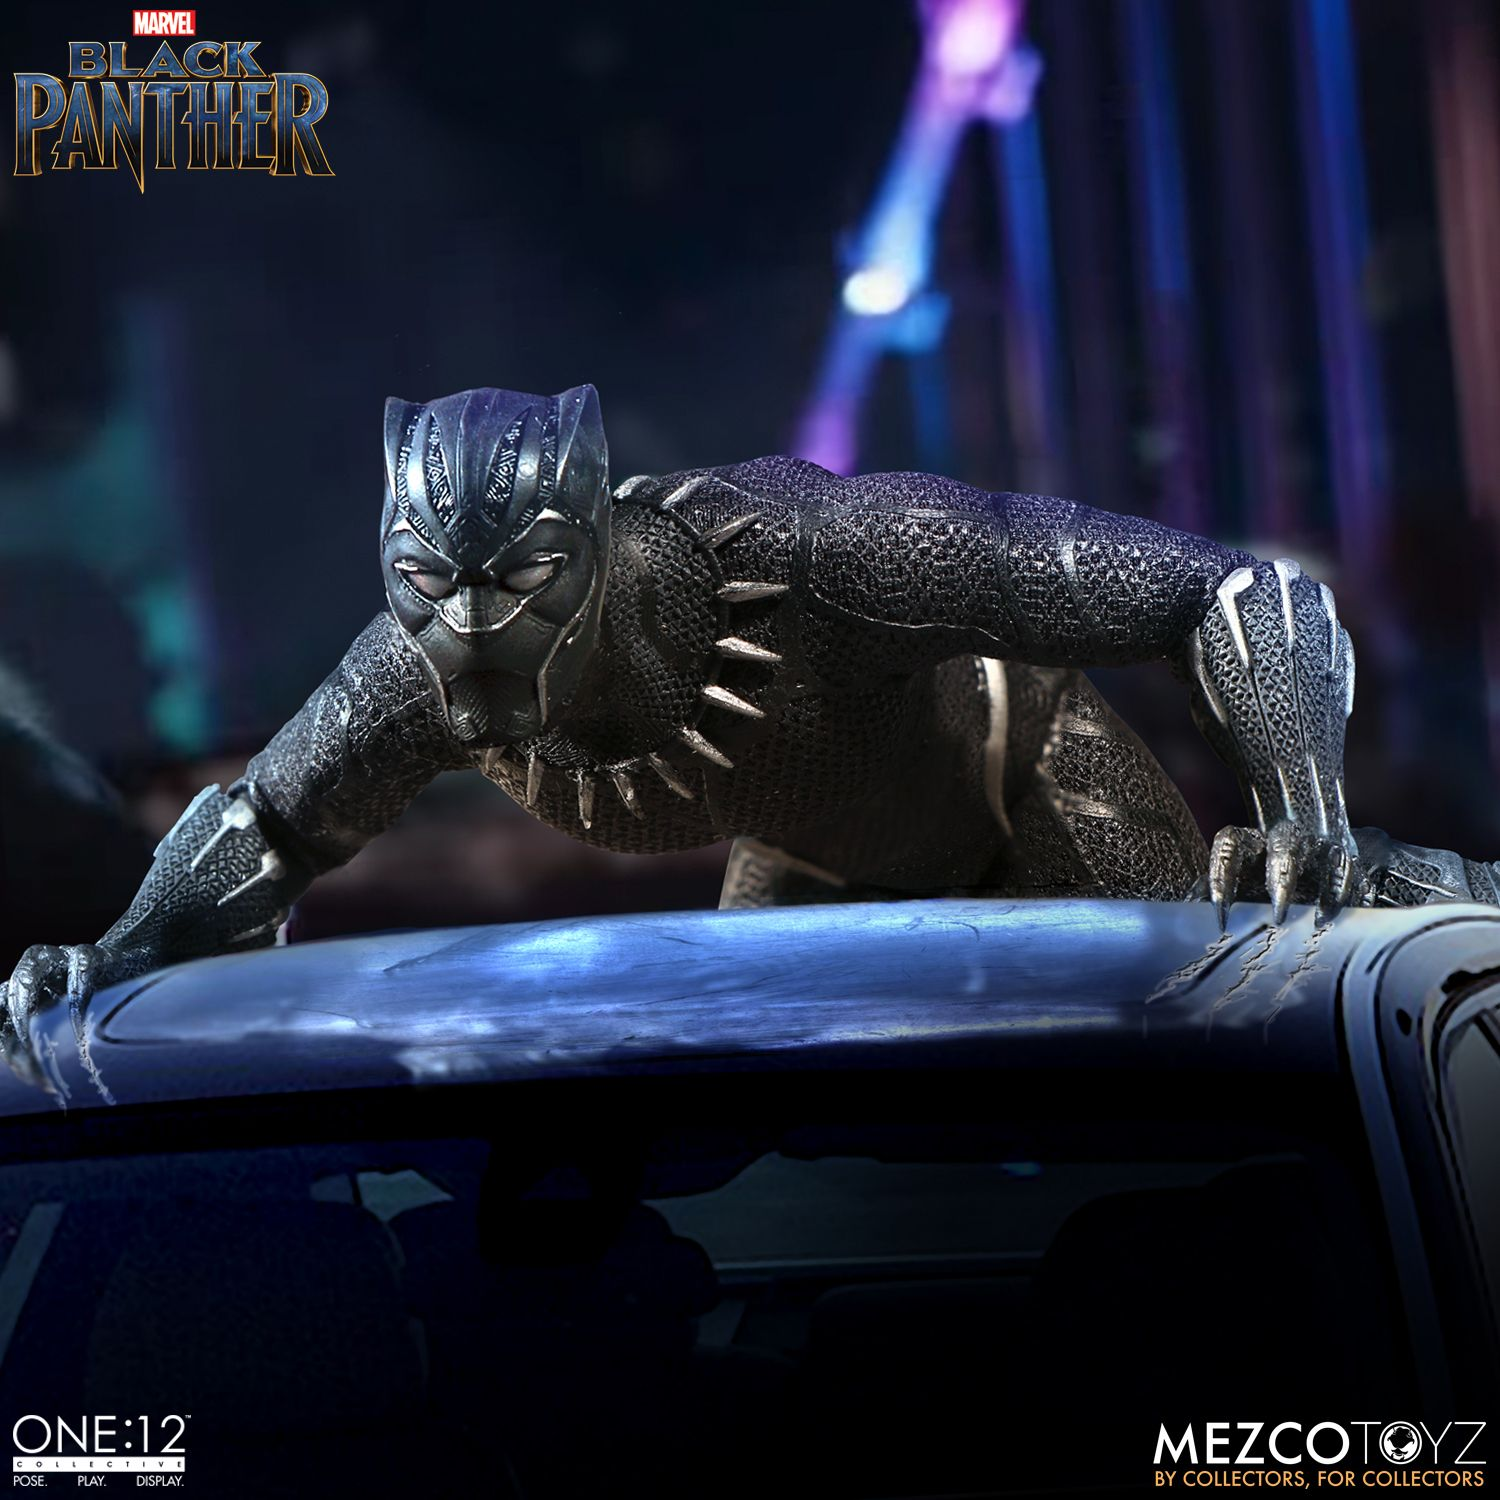 black panther mezco one 12 figure 6